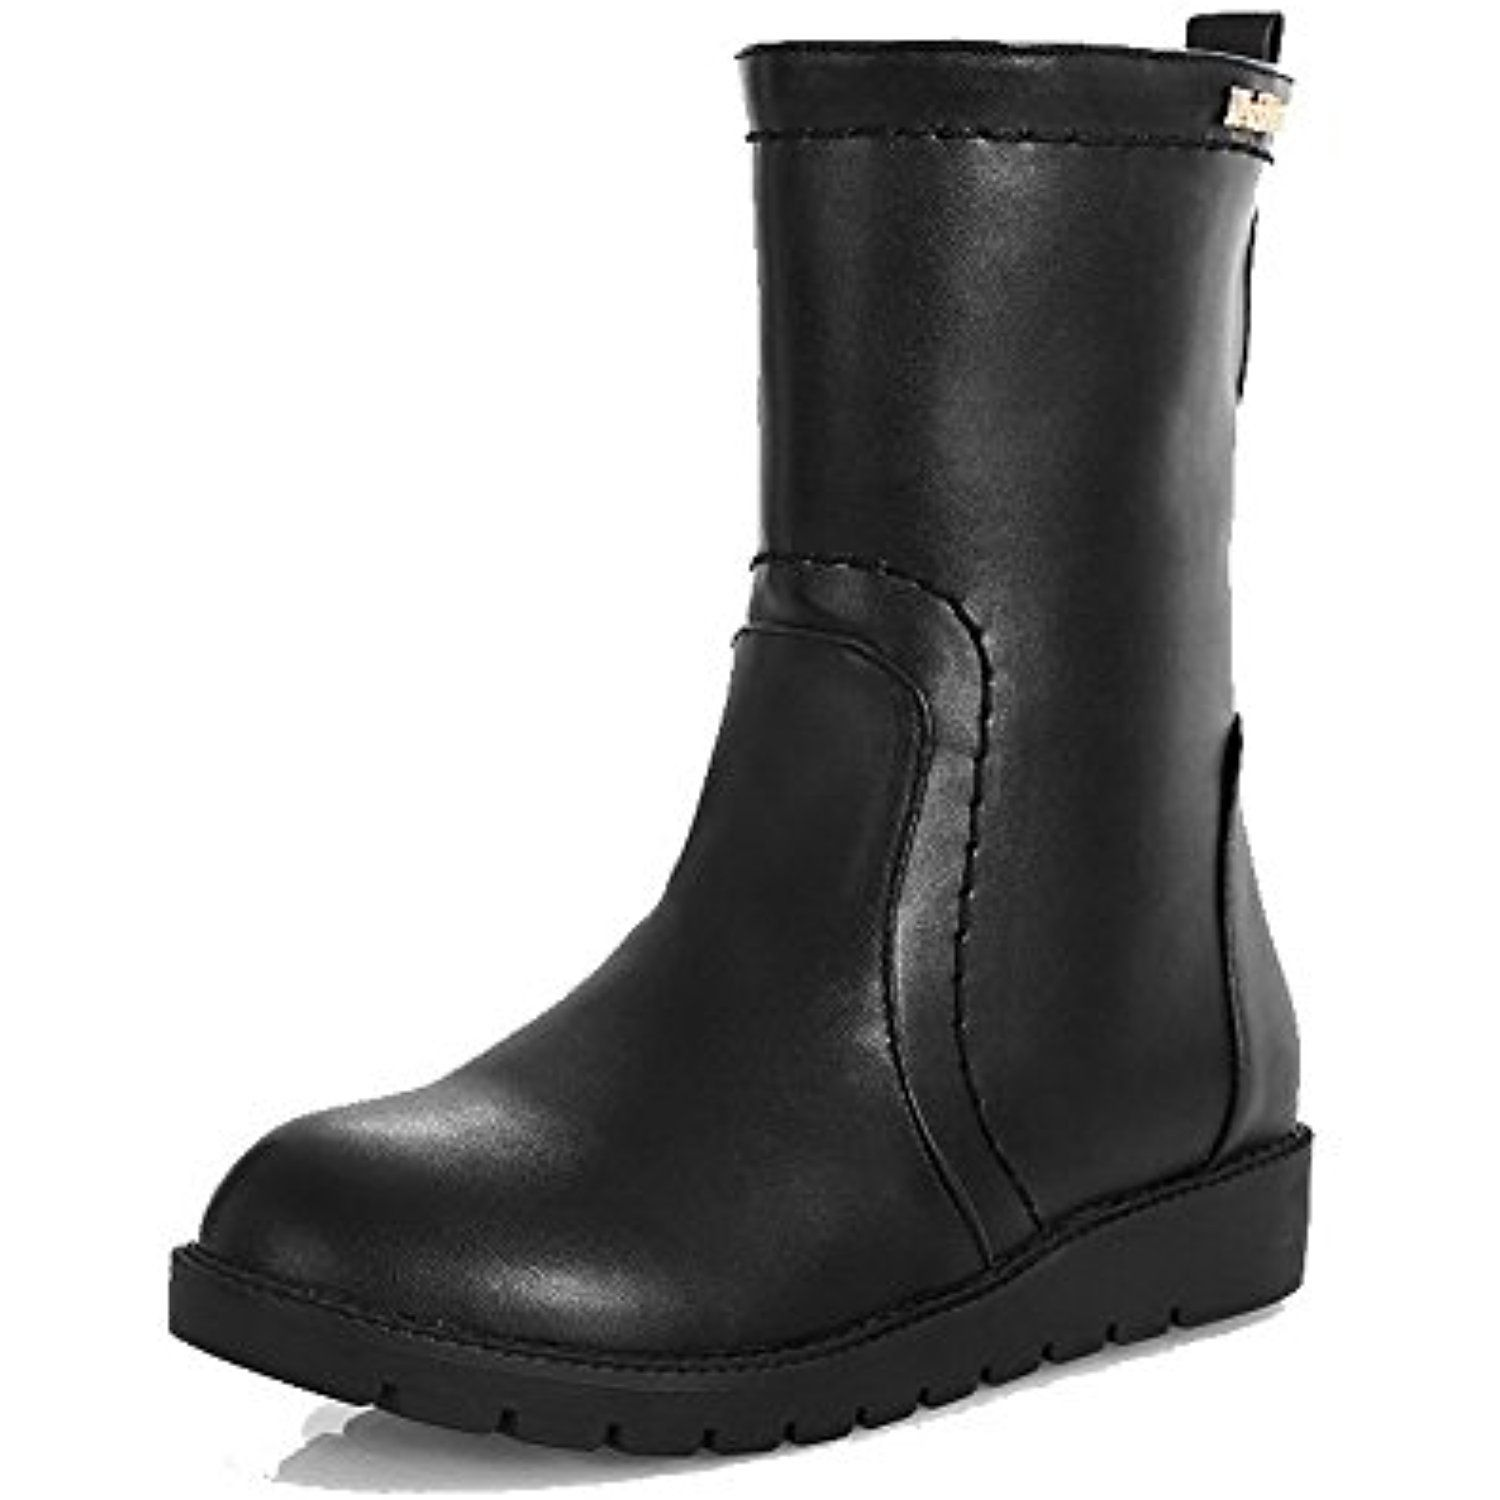 Women's Frosted Assorted Color Closed-Toe Boots With Graffiti Pattern